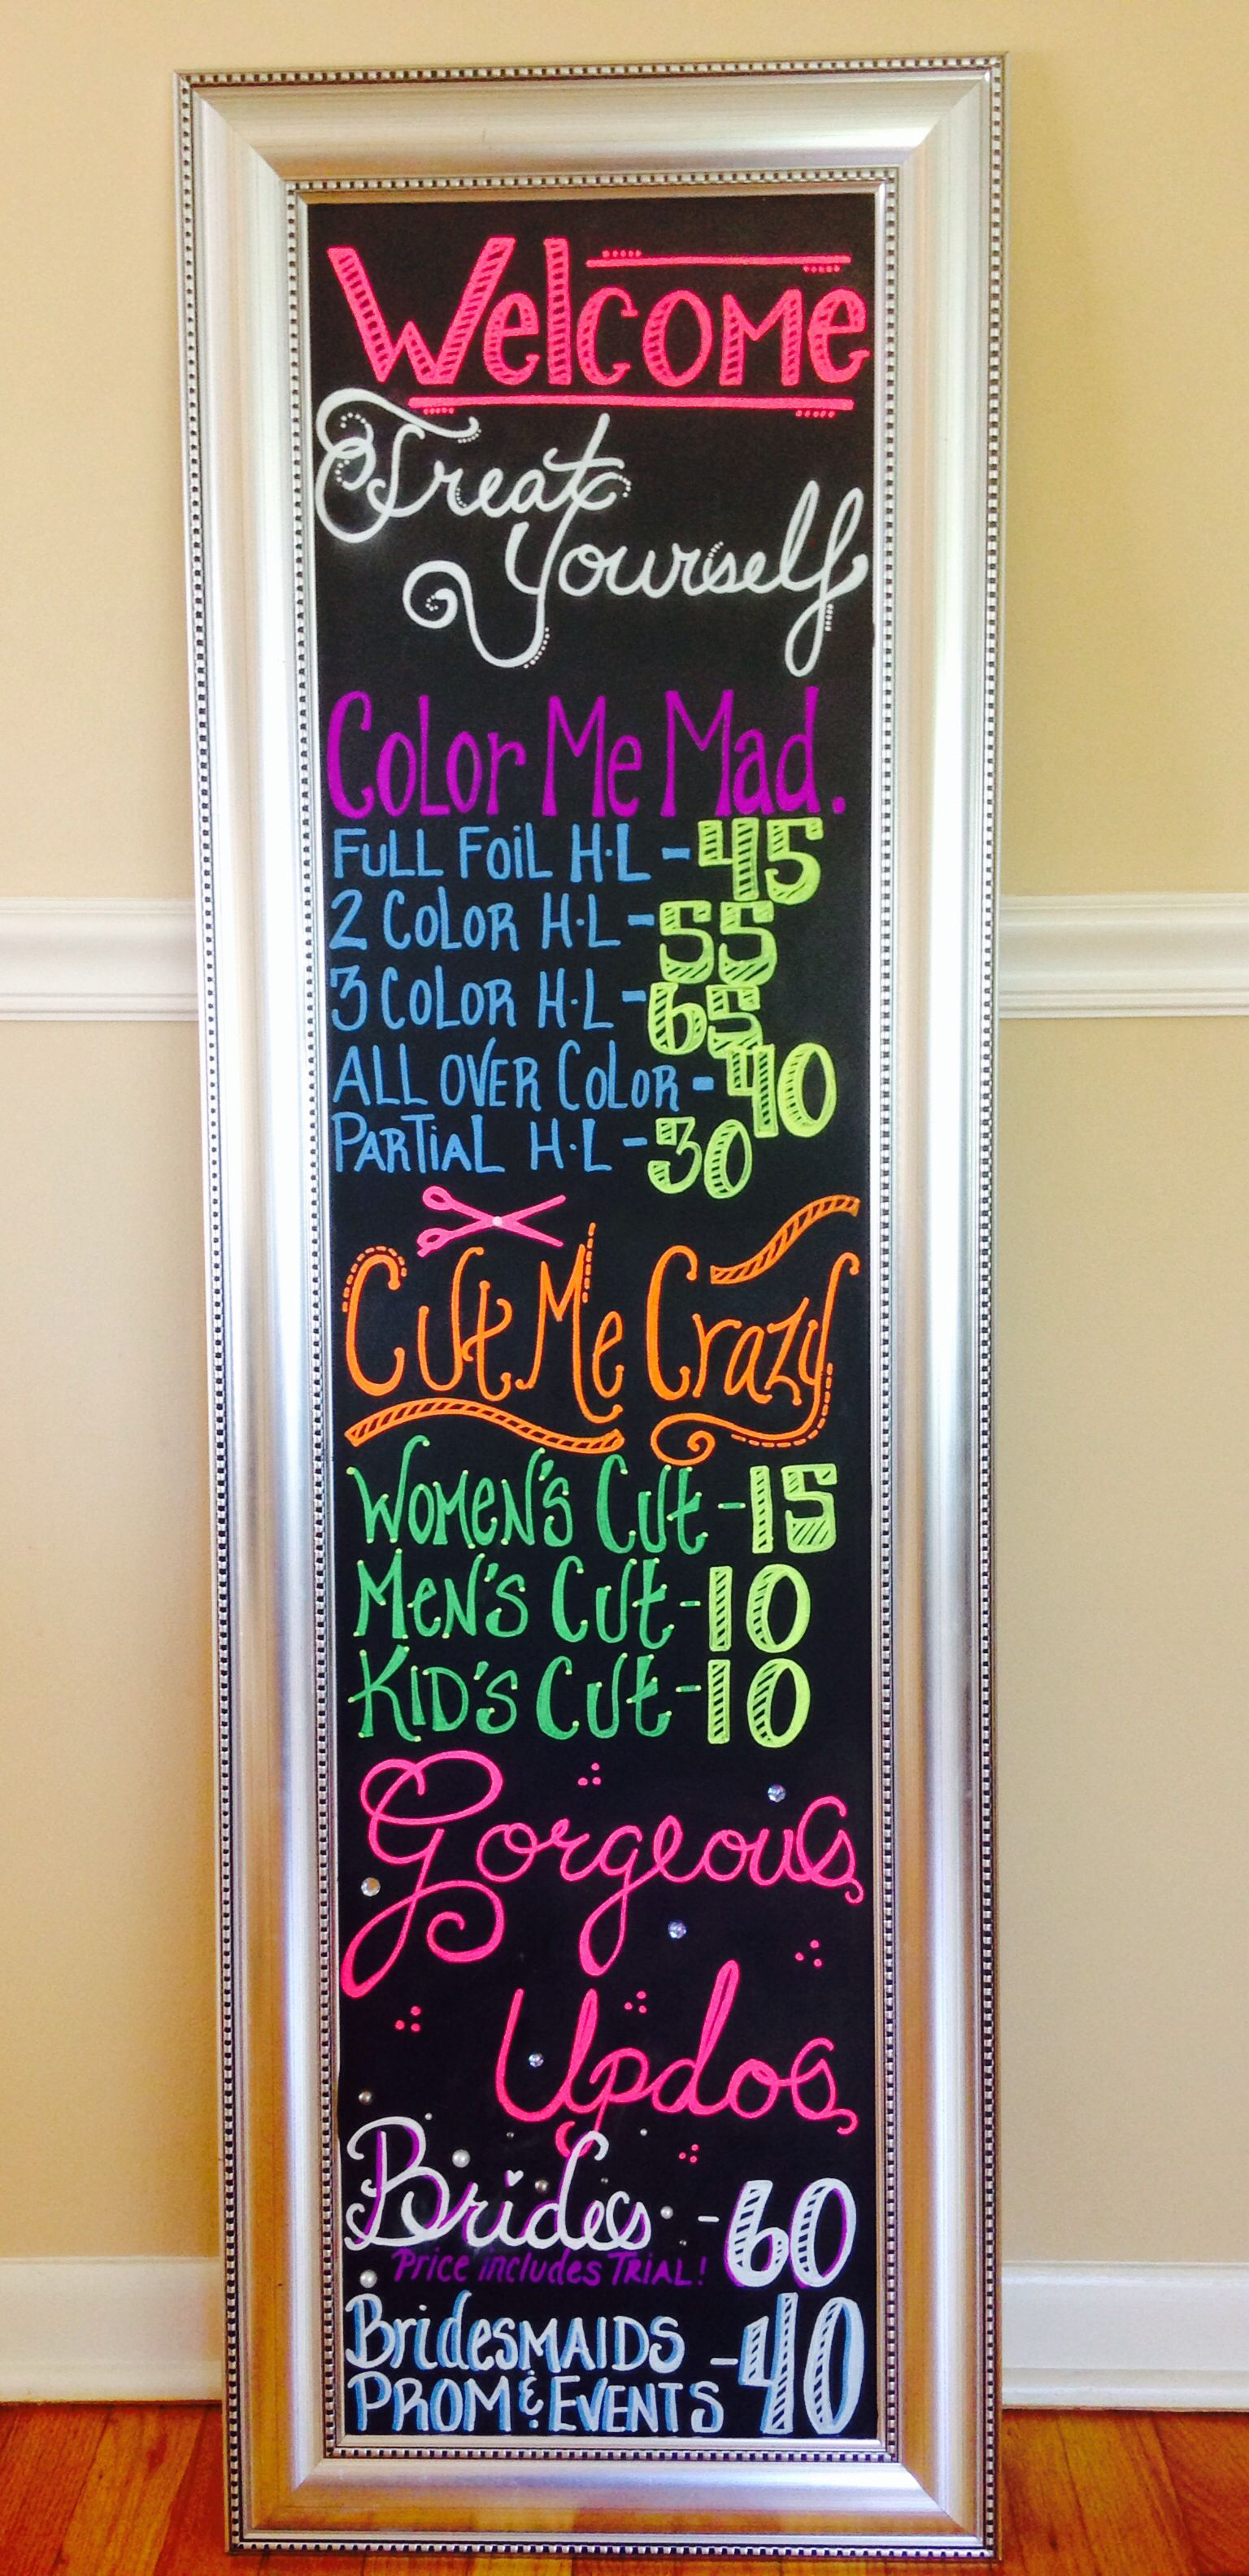 Salon chalk board | Behind the chair | Pinterest | Salons, Board and ...